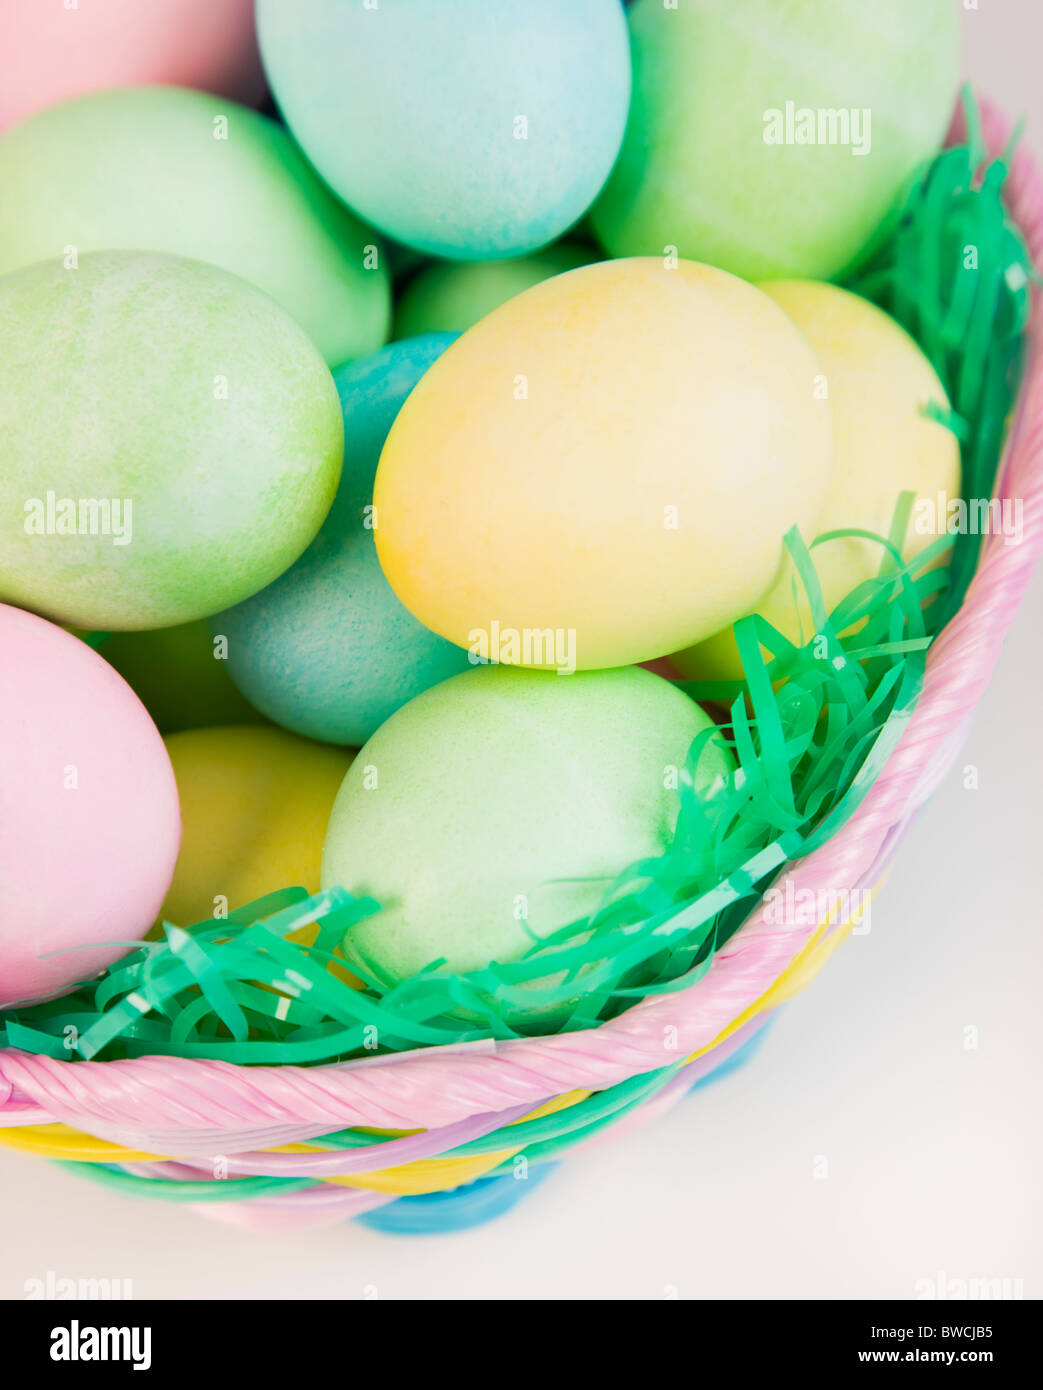 Studio shot of Easter eggs in basket - Stock Image